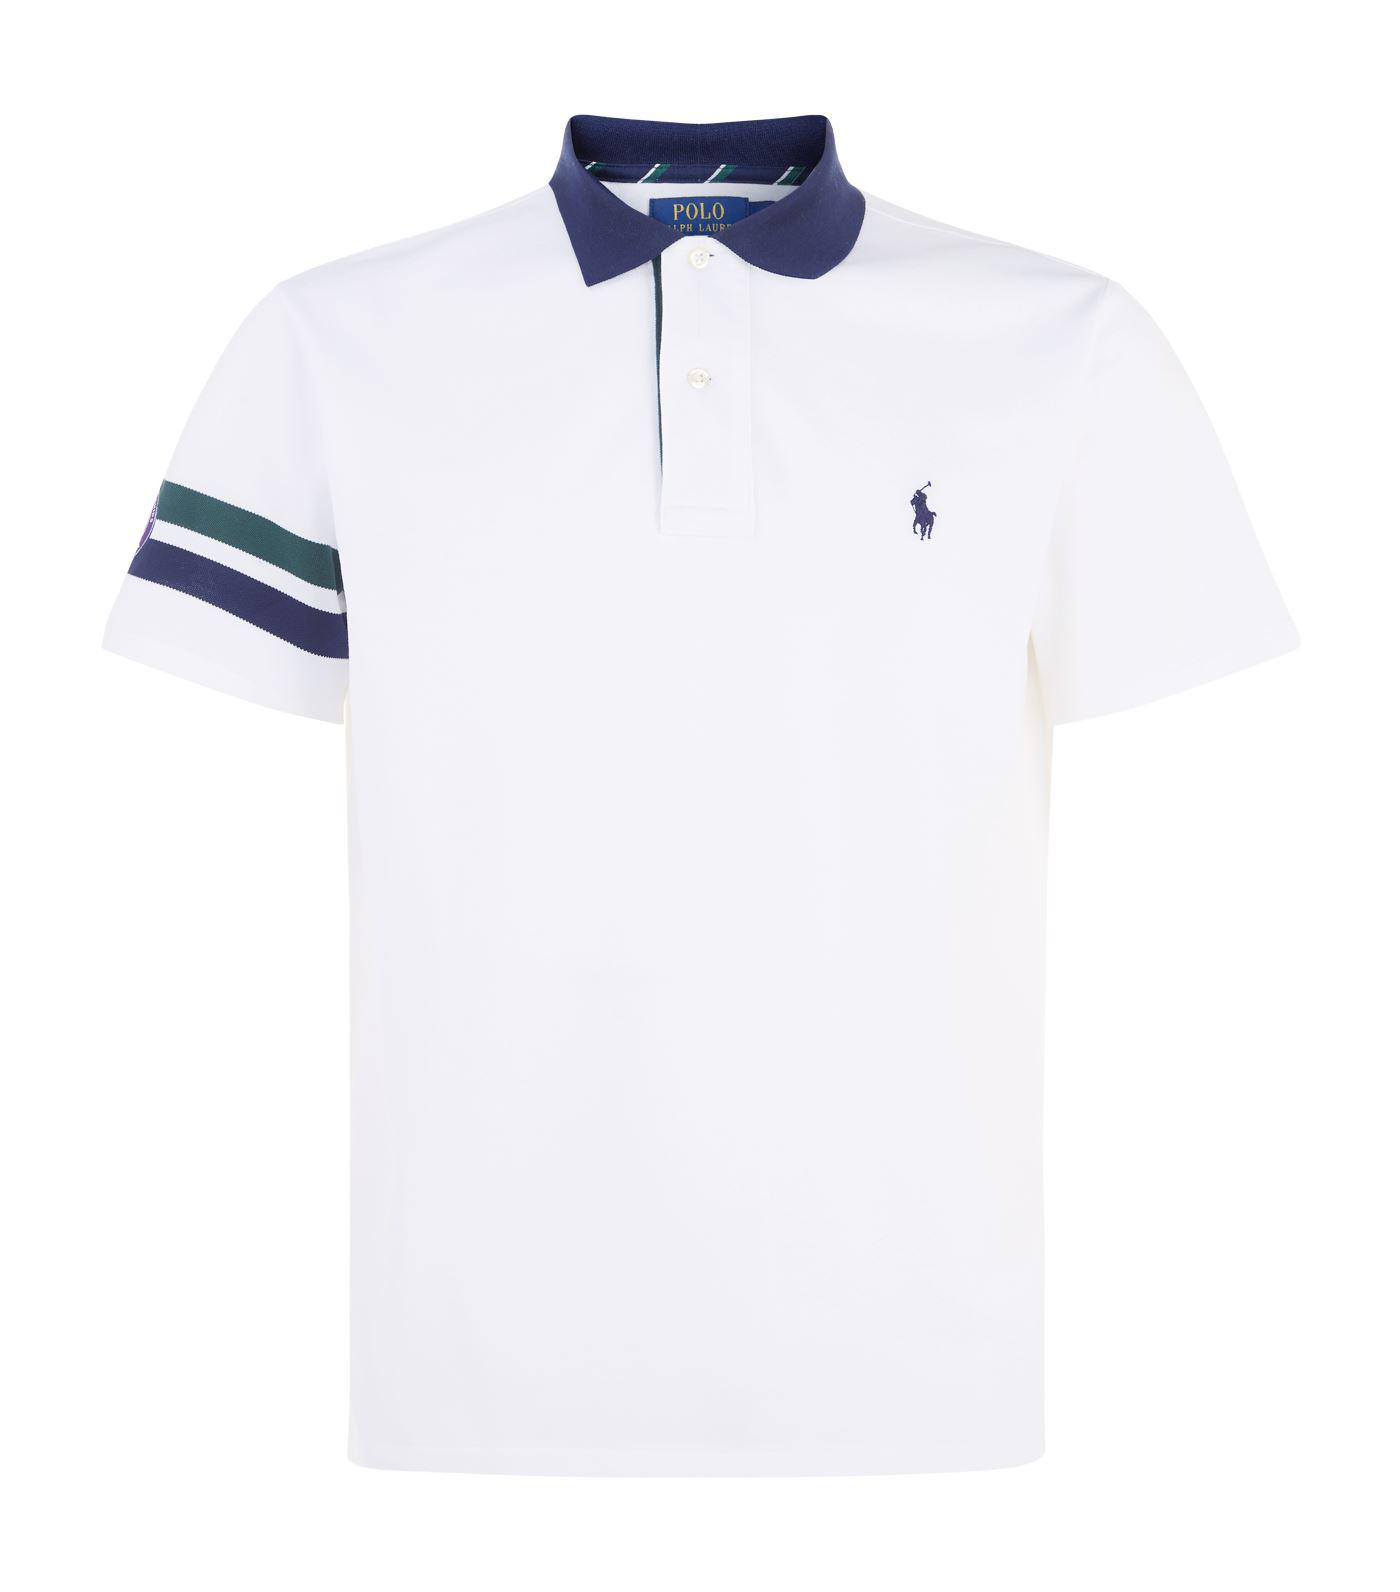 db2b12aace Lyst - Polo Ralph Lauren Wimbledon Slim Fit Polo Shirt in White for Men